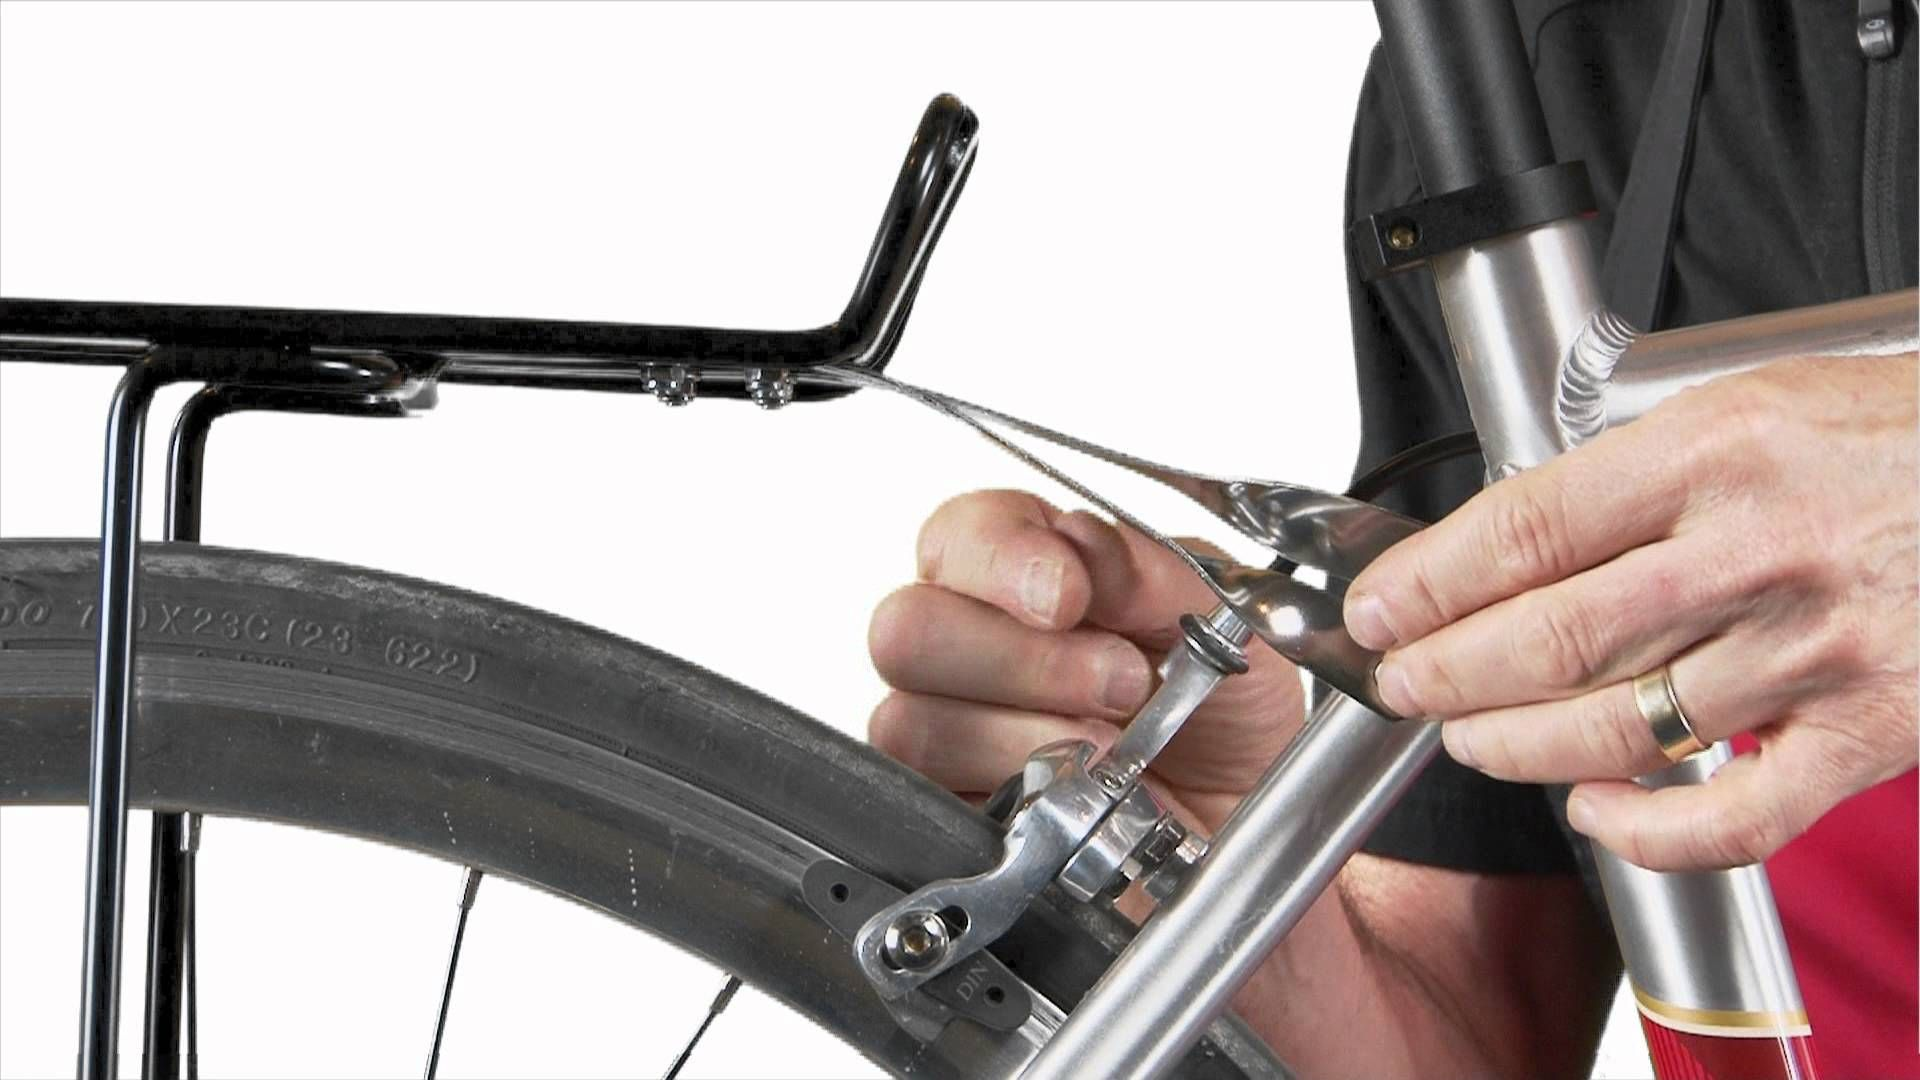 How to Install a Rack on Your Bike